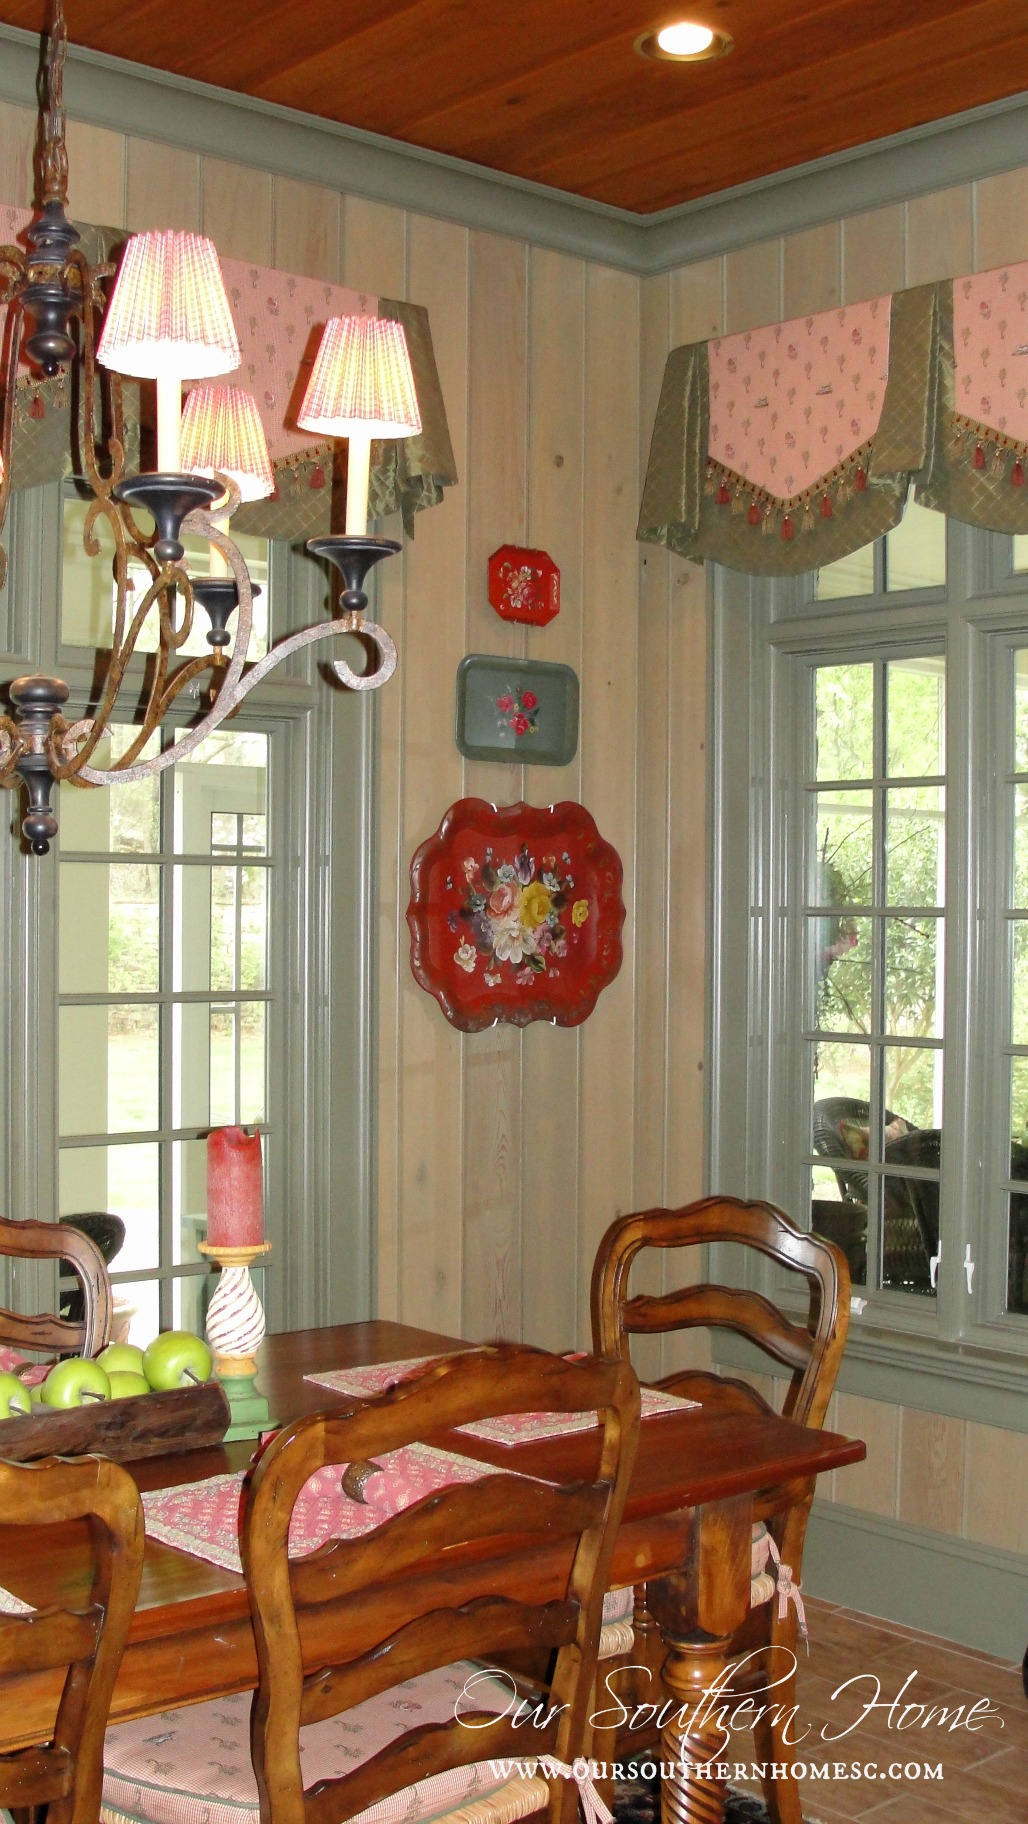 French country kitchen tour our southern home for Southern country home decor